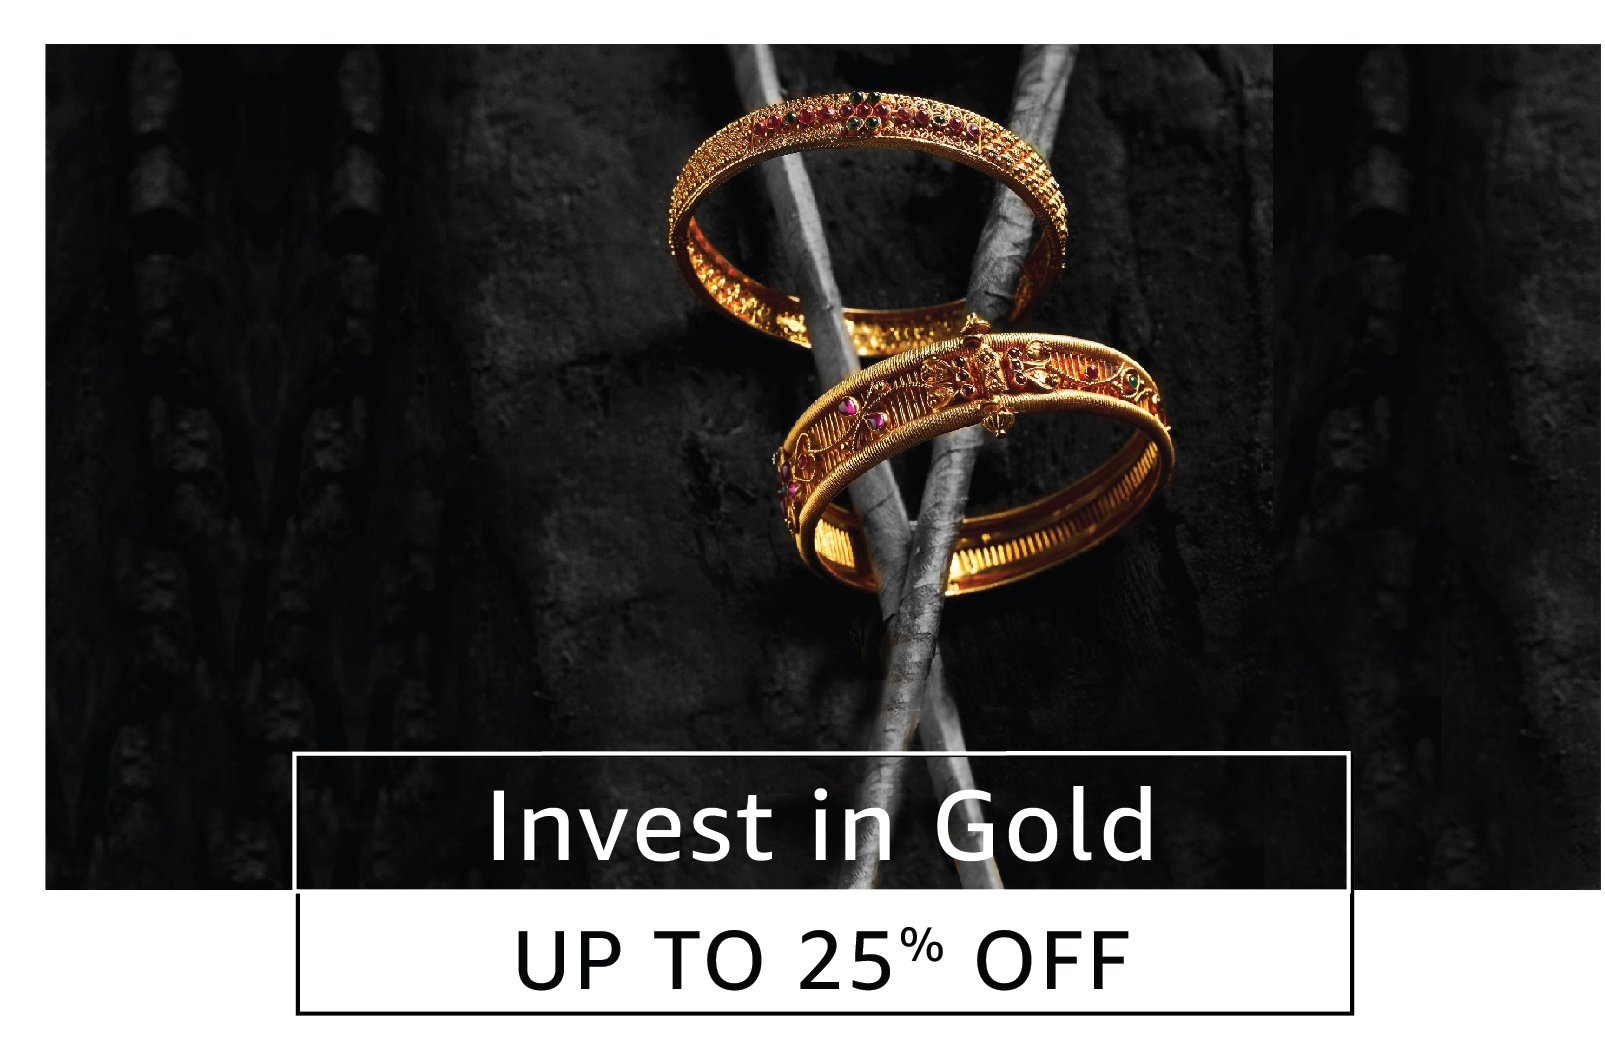 Invest in Gold Up to 25% off